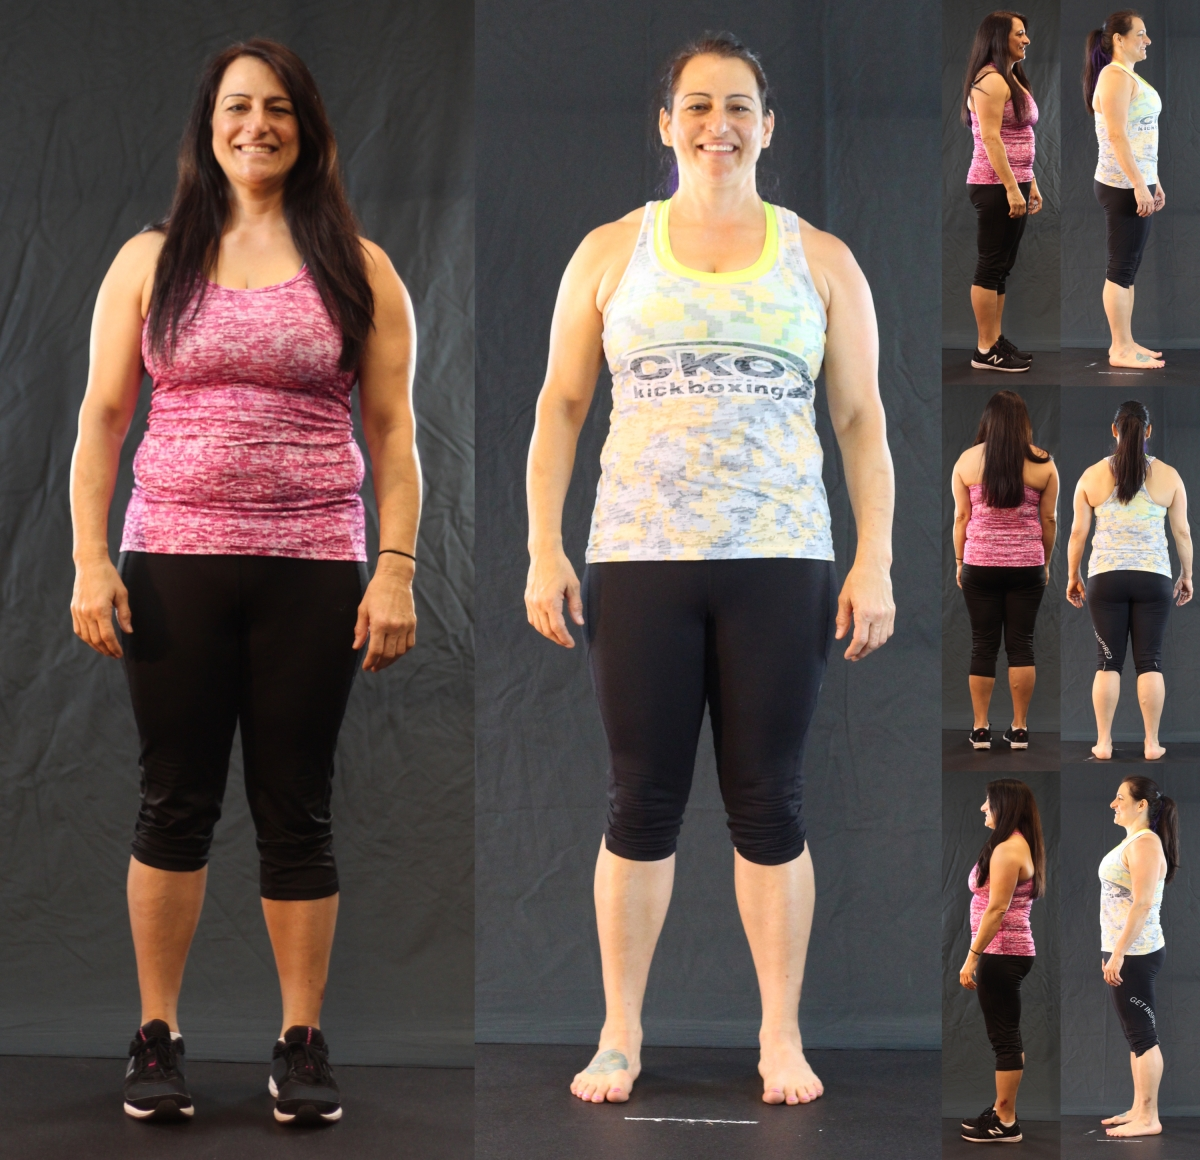 CKO 2.0 before and after. 10-week challenge